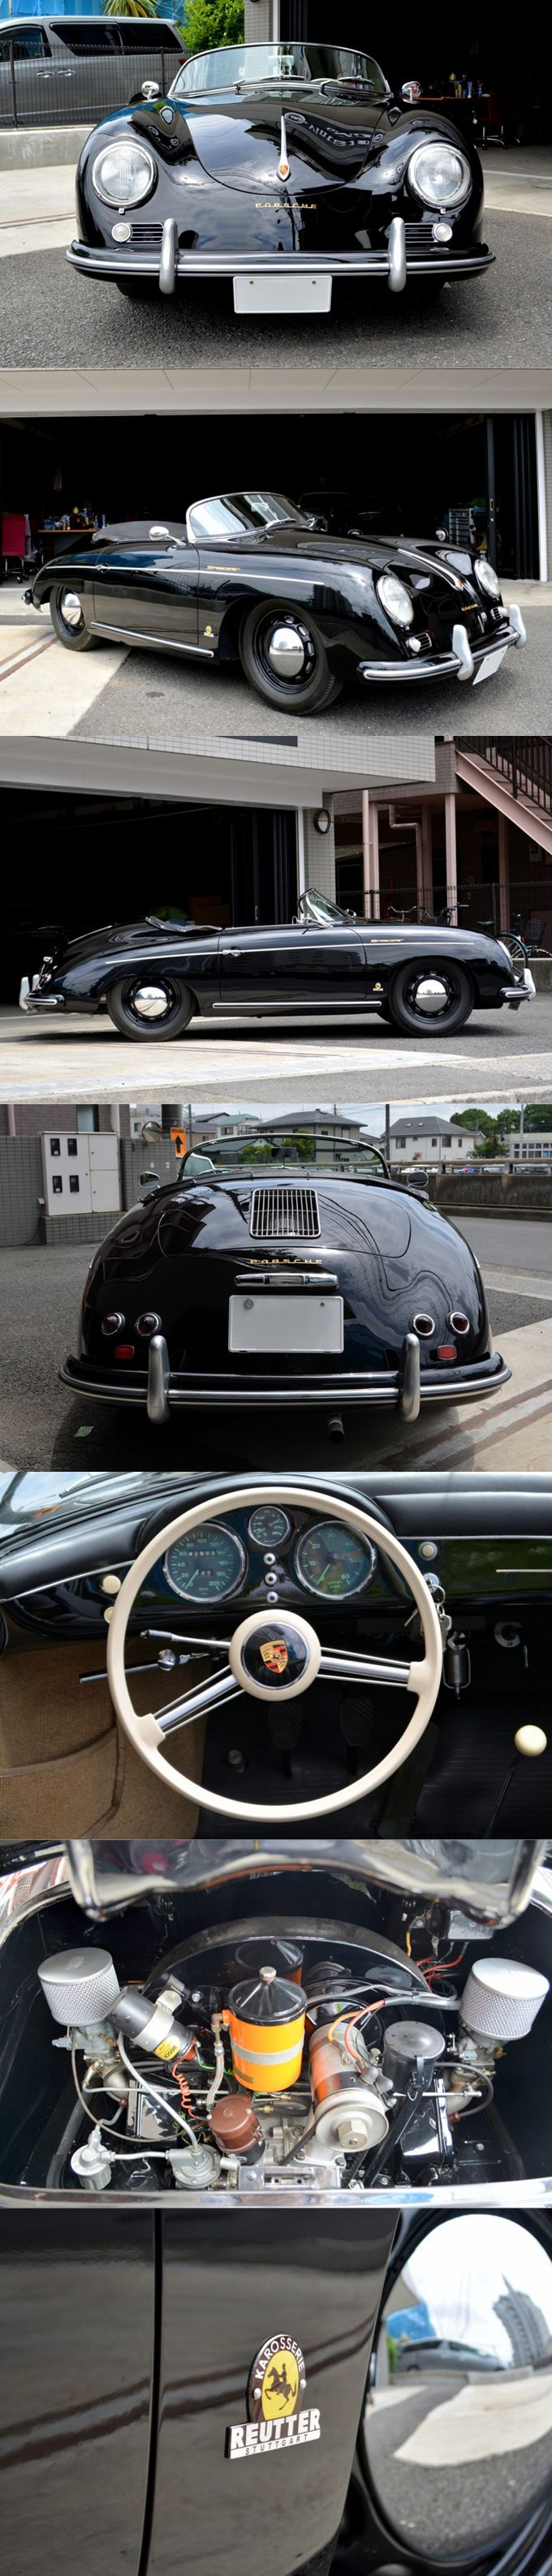 1955 Porsche 356 Speedster Reutter / pre A / 43.000km / vintage-car.net / Japan / black